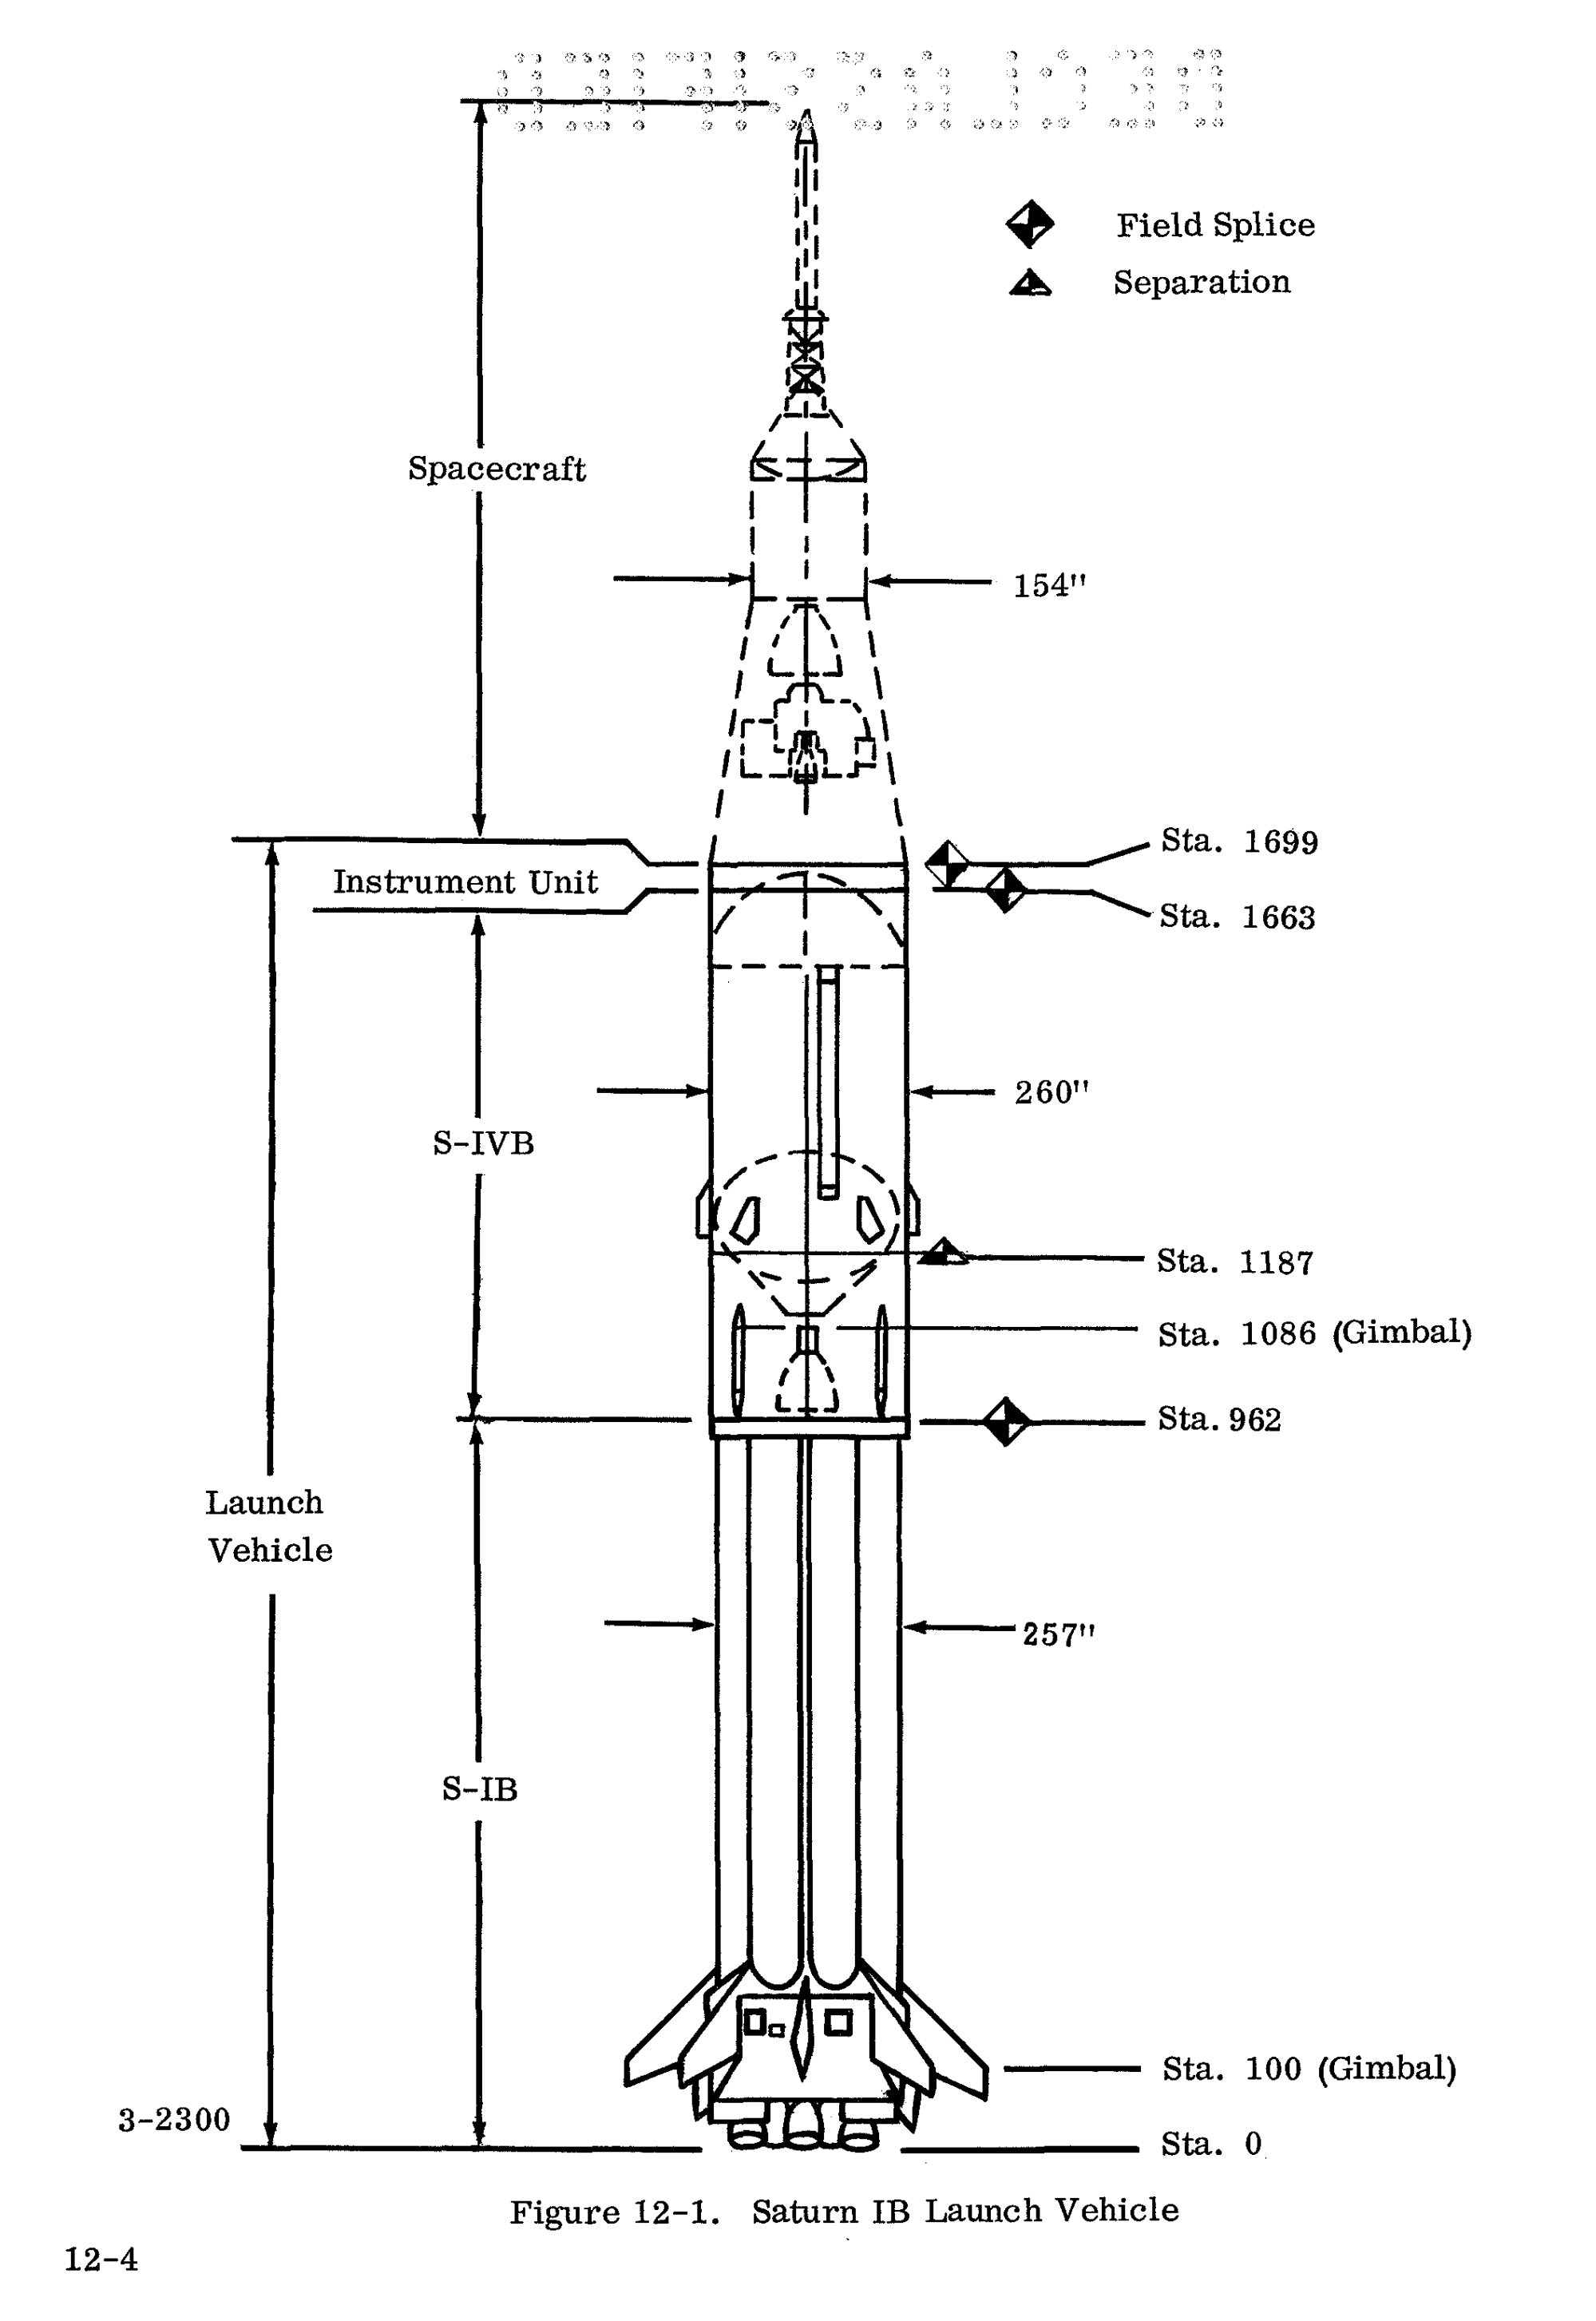 hight resolution of saturn ib arrangement diagram 1964